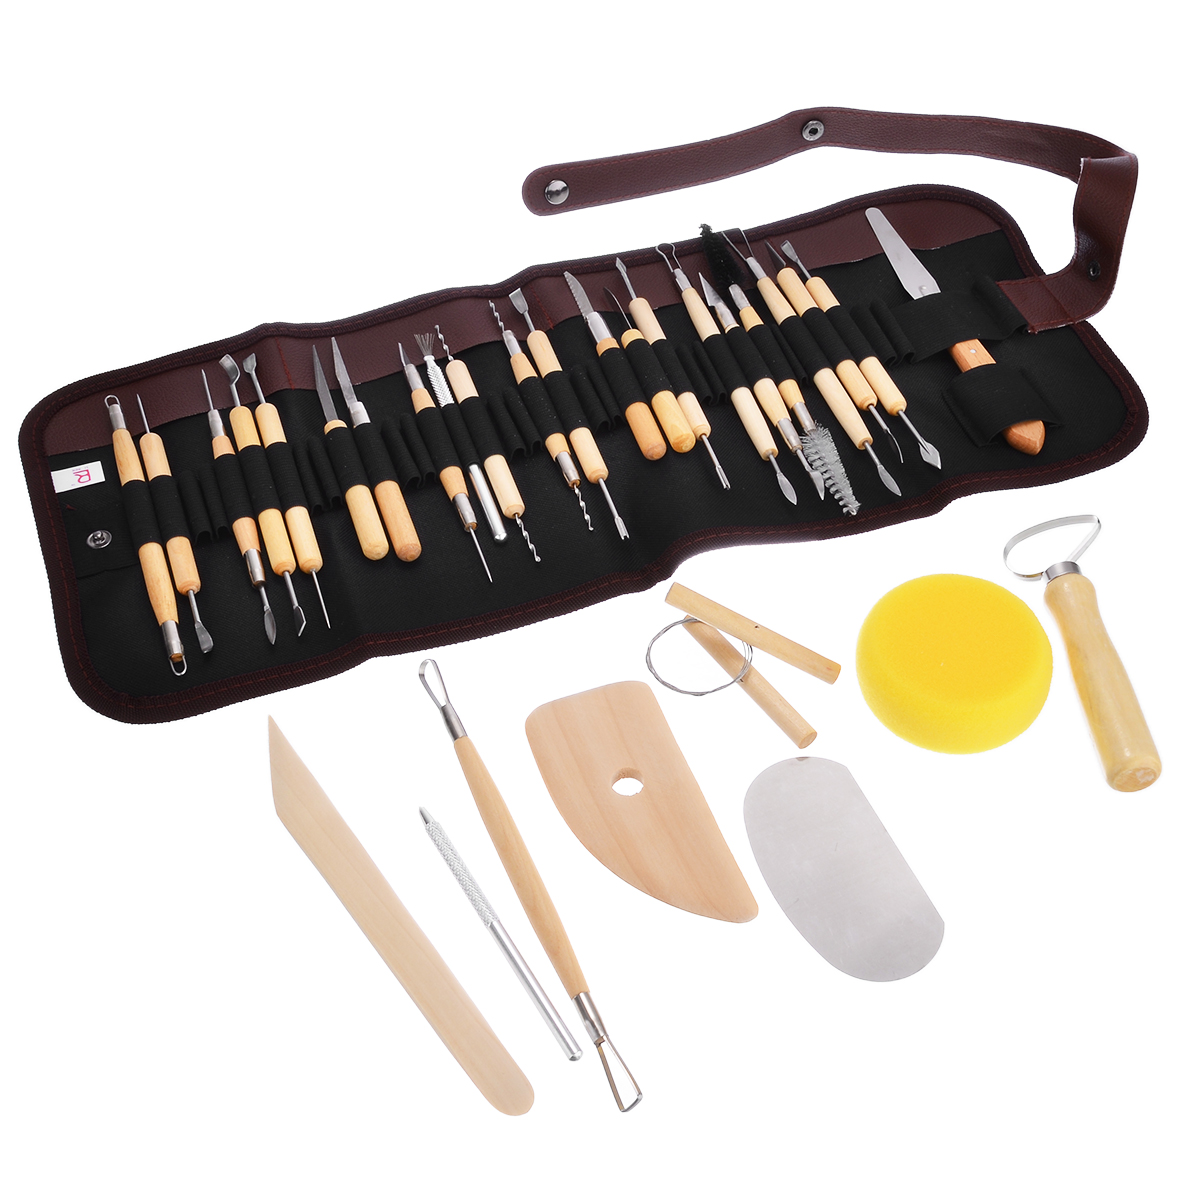 Home & Garden 19pcs Clay Sculpting Sculpt Smoothing Wax Carving Pottery Ceramic Tools Wood Handle Set Xhc88 Last Style